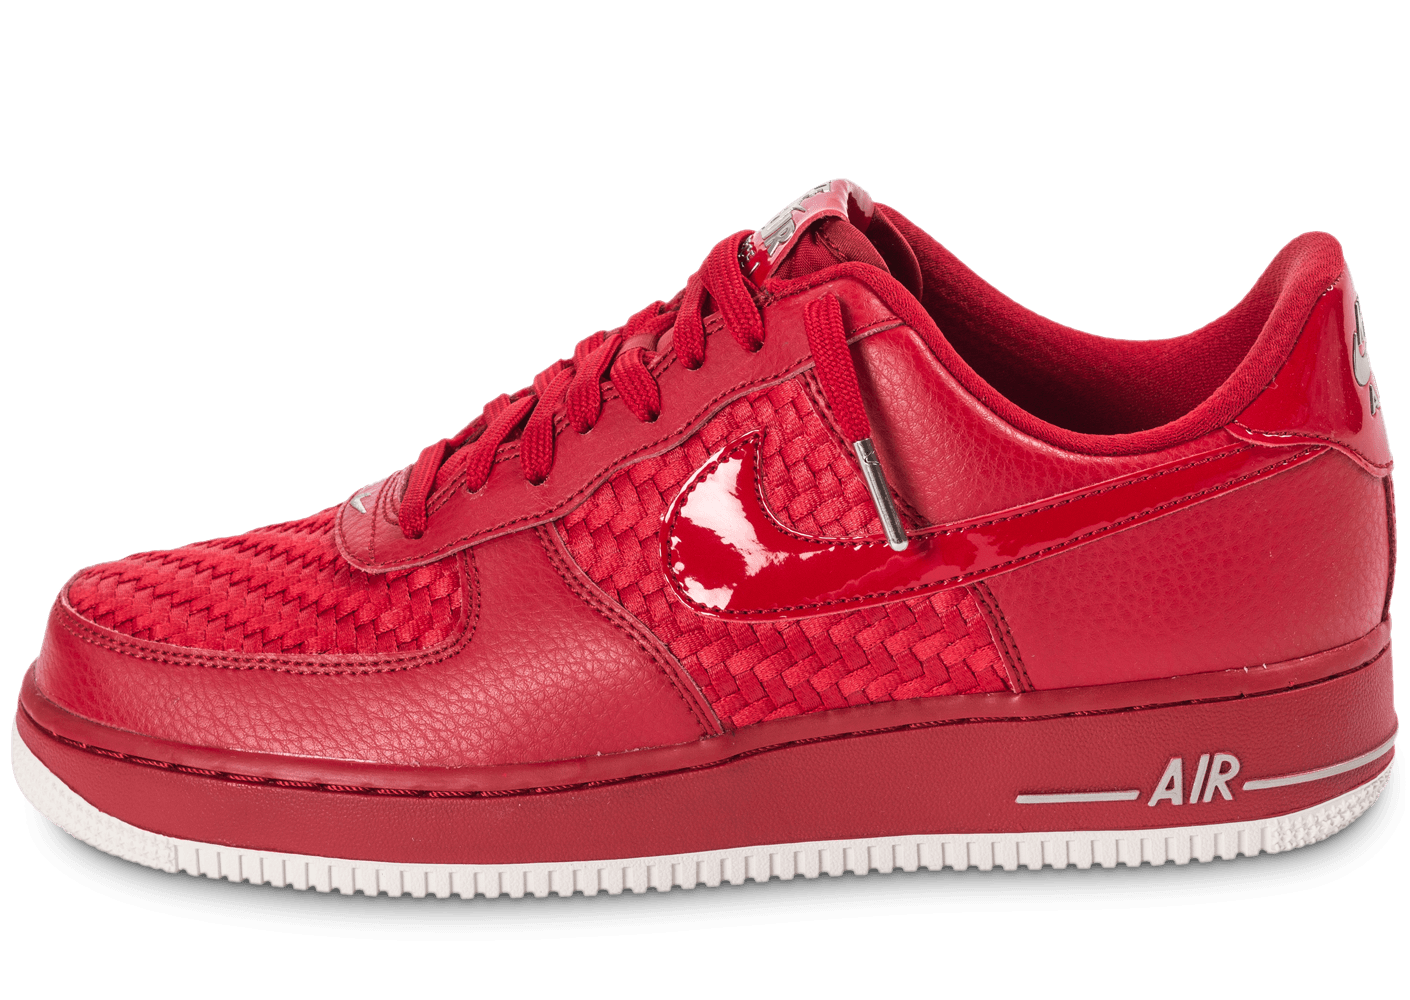 nike air force 1 lv8 low rouge chaussures baskets homme. Black Bedroom Furniture Sets. Home Design Ideas